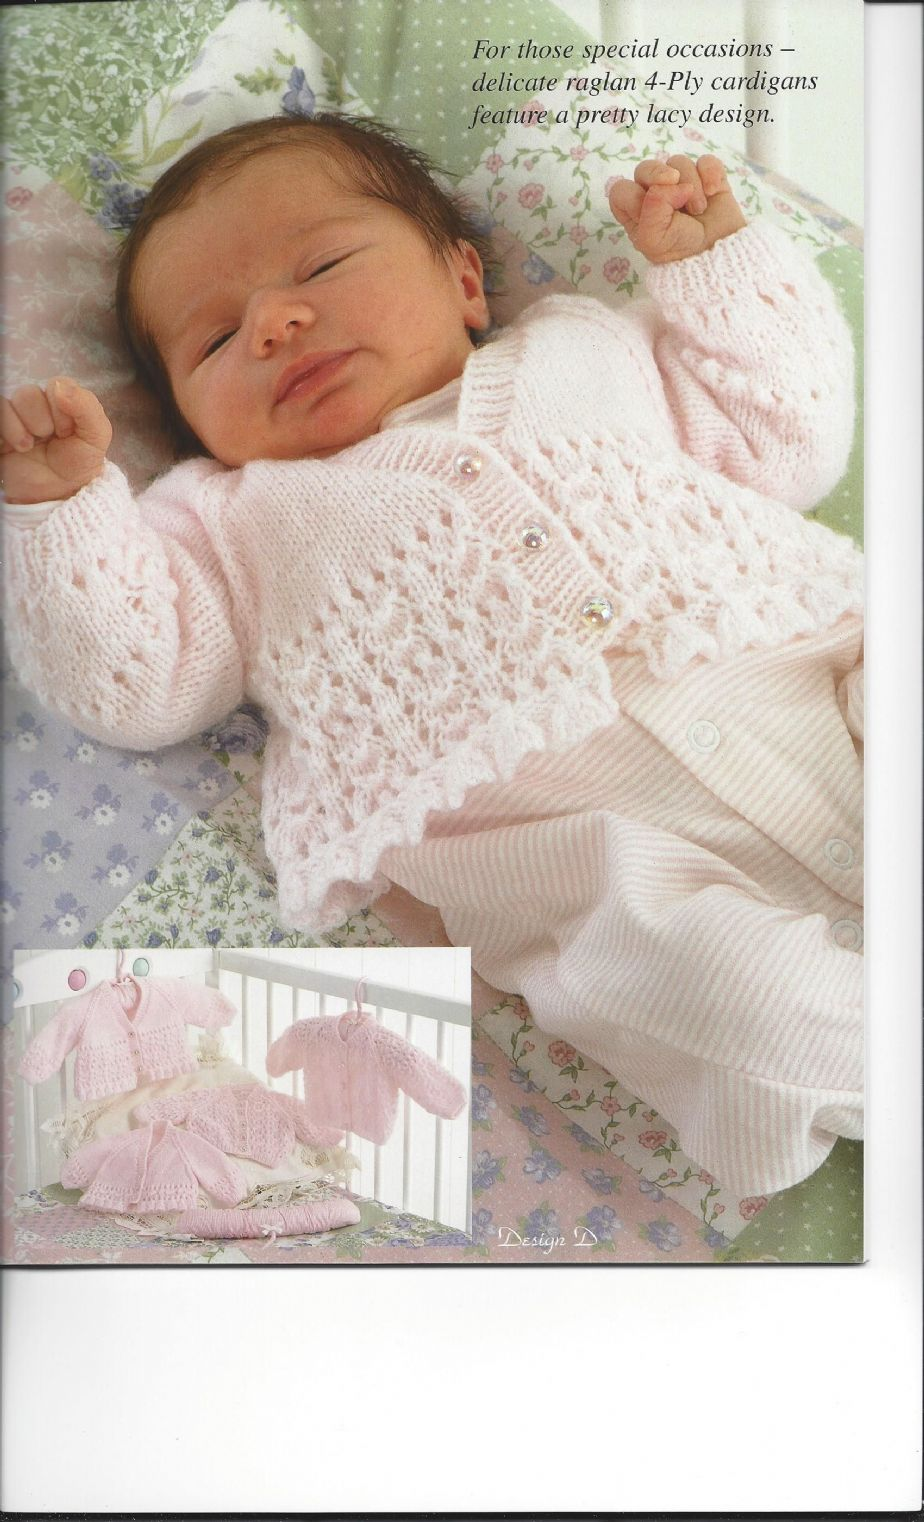 Sirdar Book 280 - Early Arrivals Knitting Book - Sirdar Snuggly Baby ...